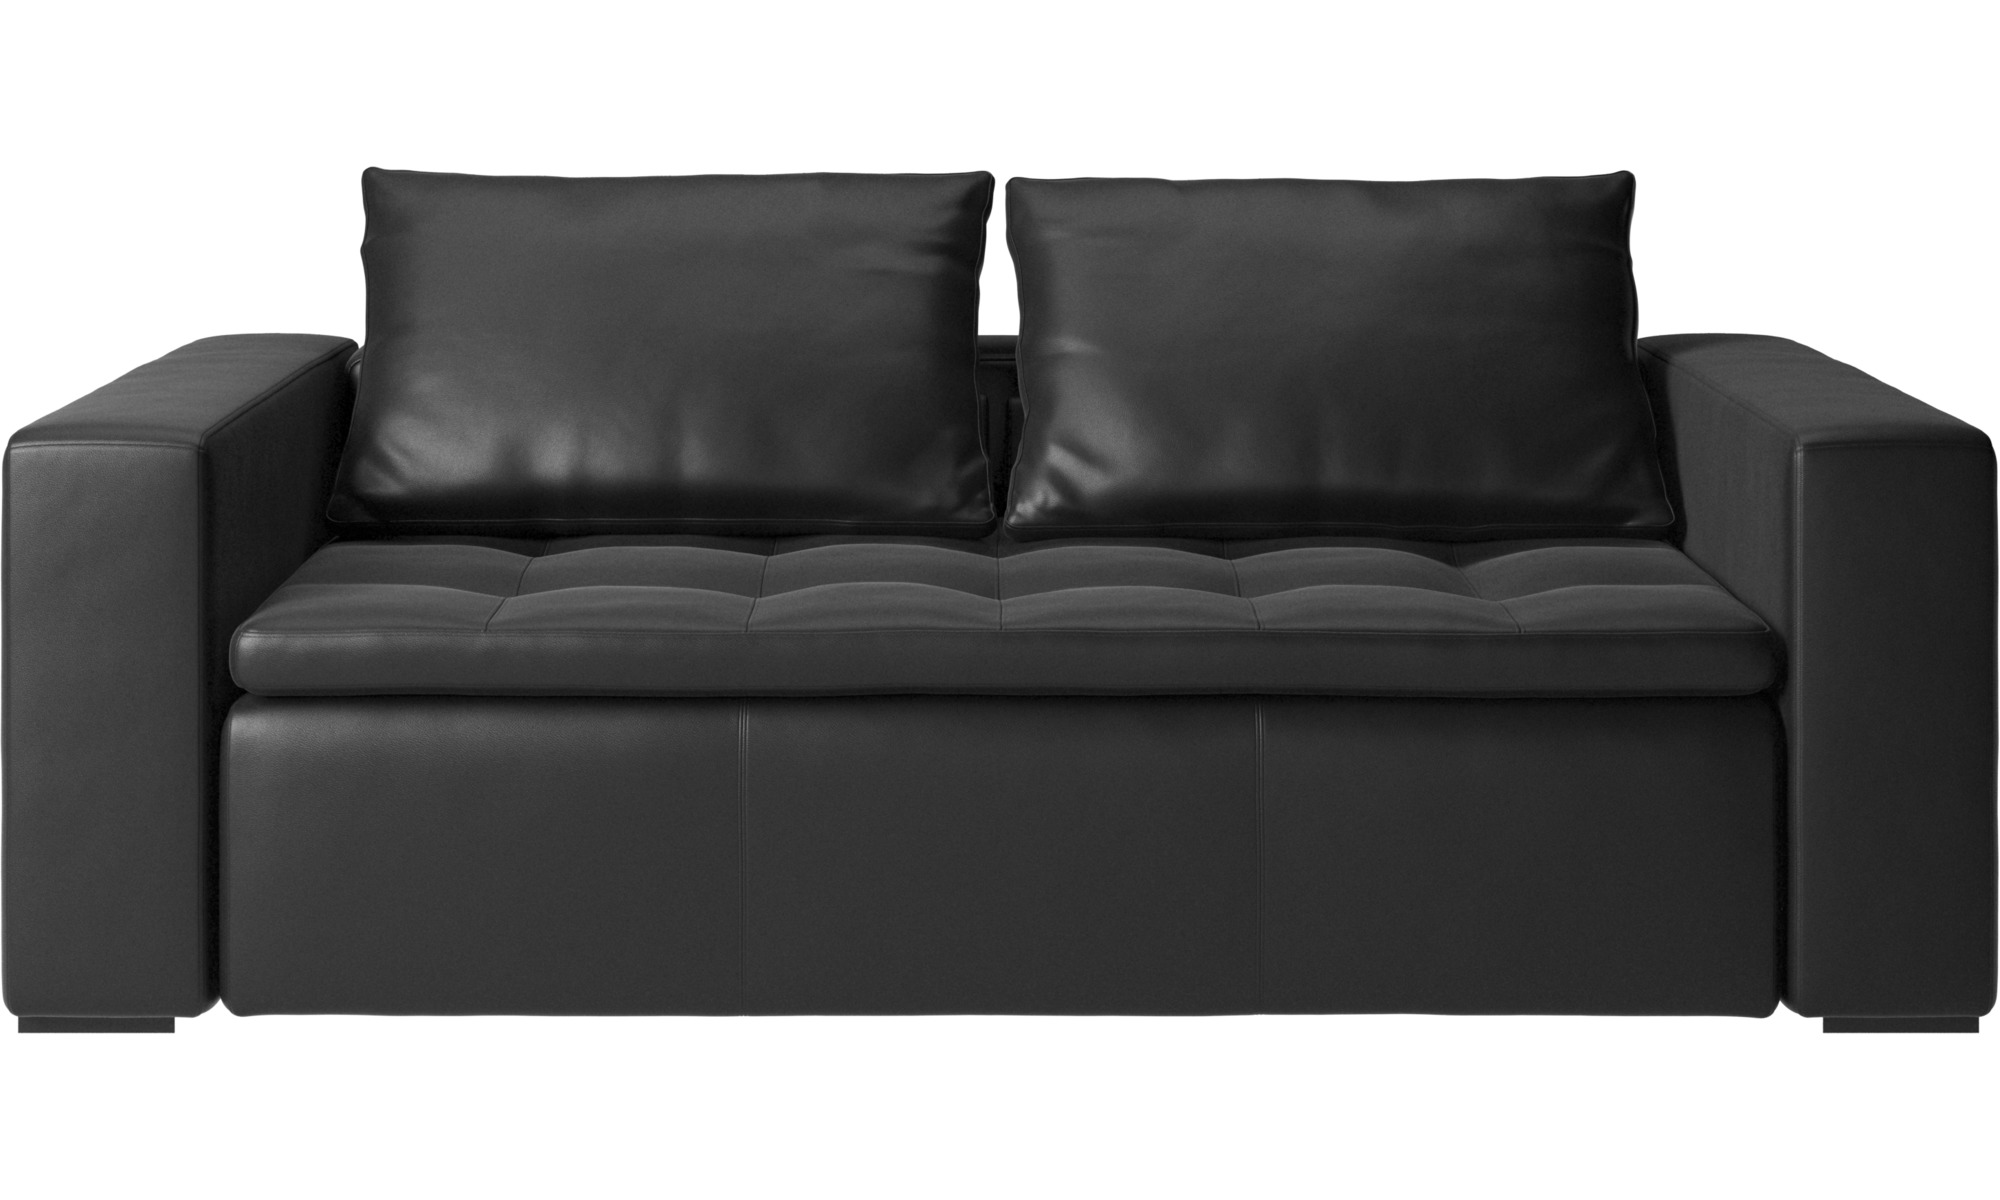 2 5 seater sofas mezzo sofa boconcept. Black Bedroom Furniture Sets. Home Design Ideas